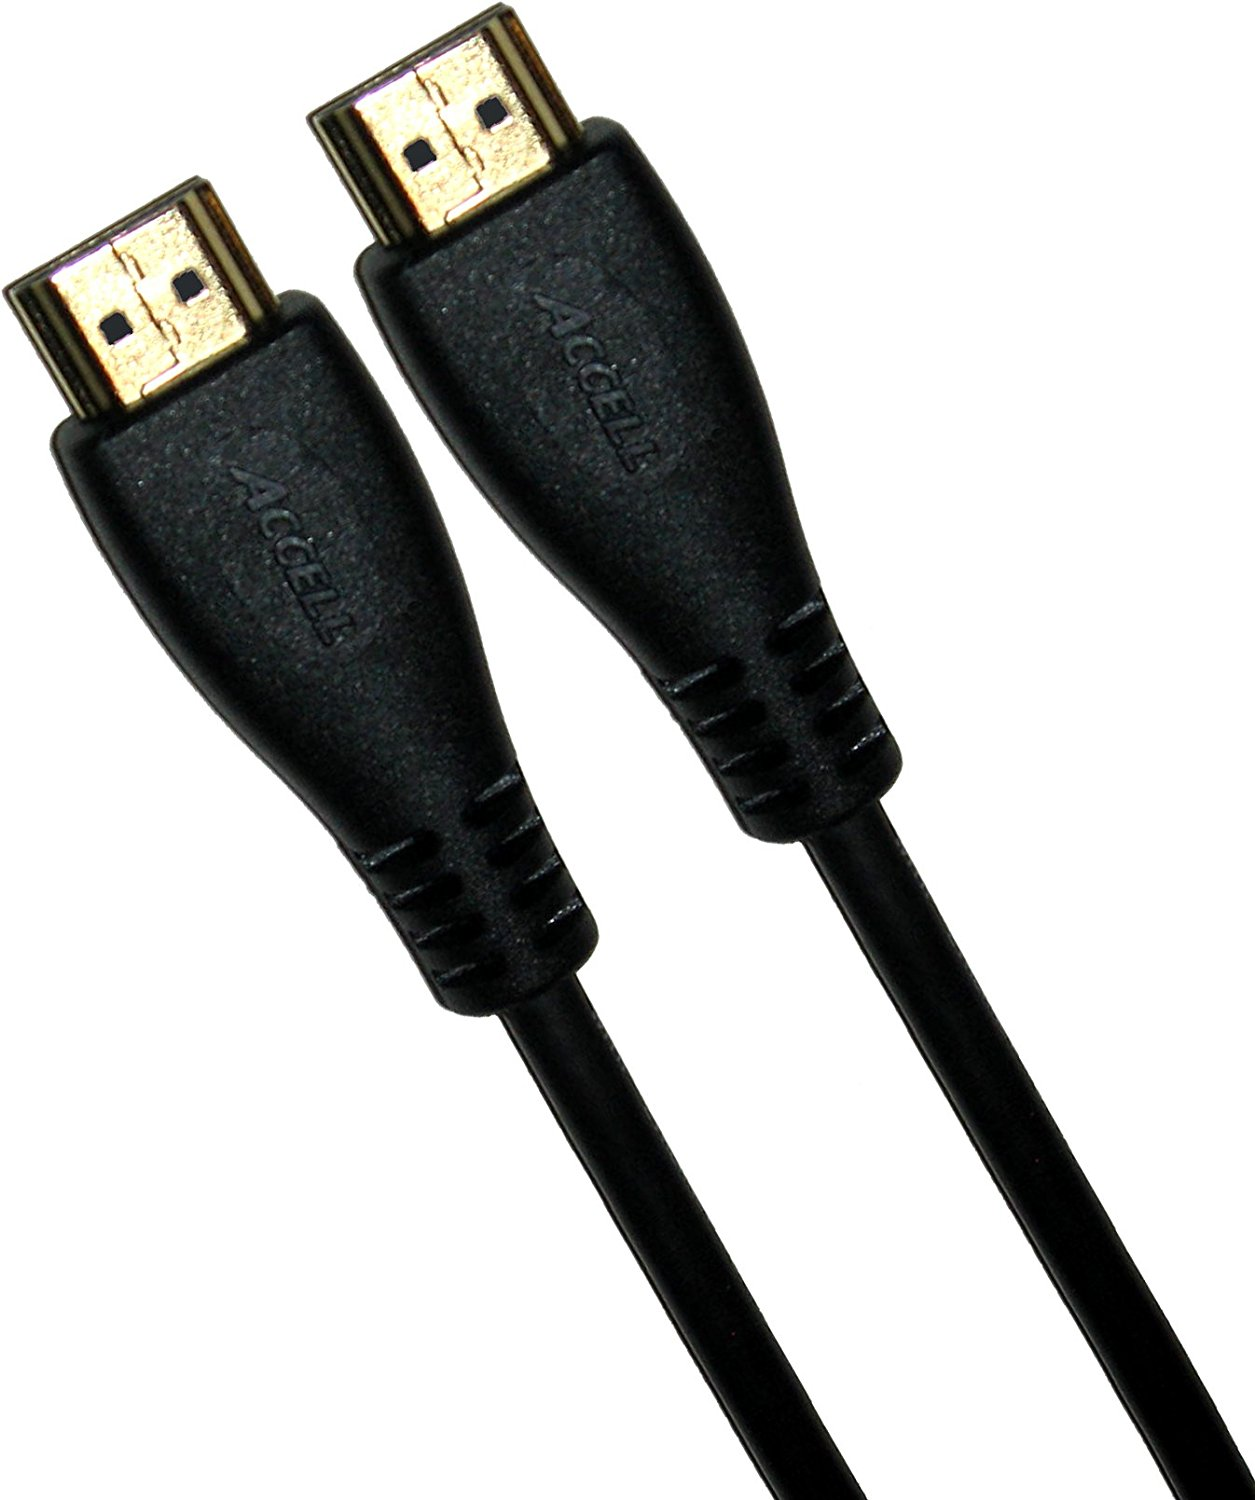 Accell A103C-006B HDMI (A) to HDMI (A) High Speed Cable 6.5 feet (1.8m), with Ethernet Support, Smal